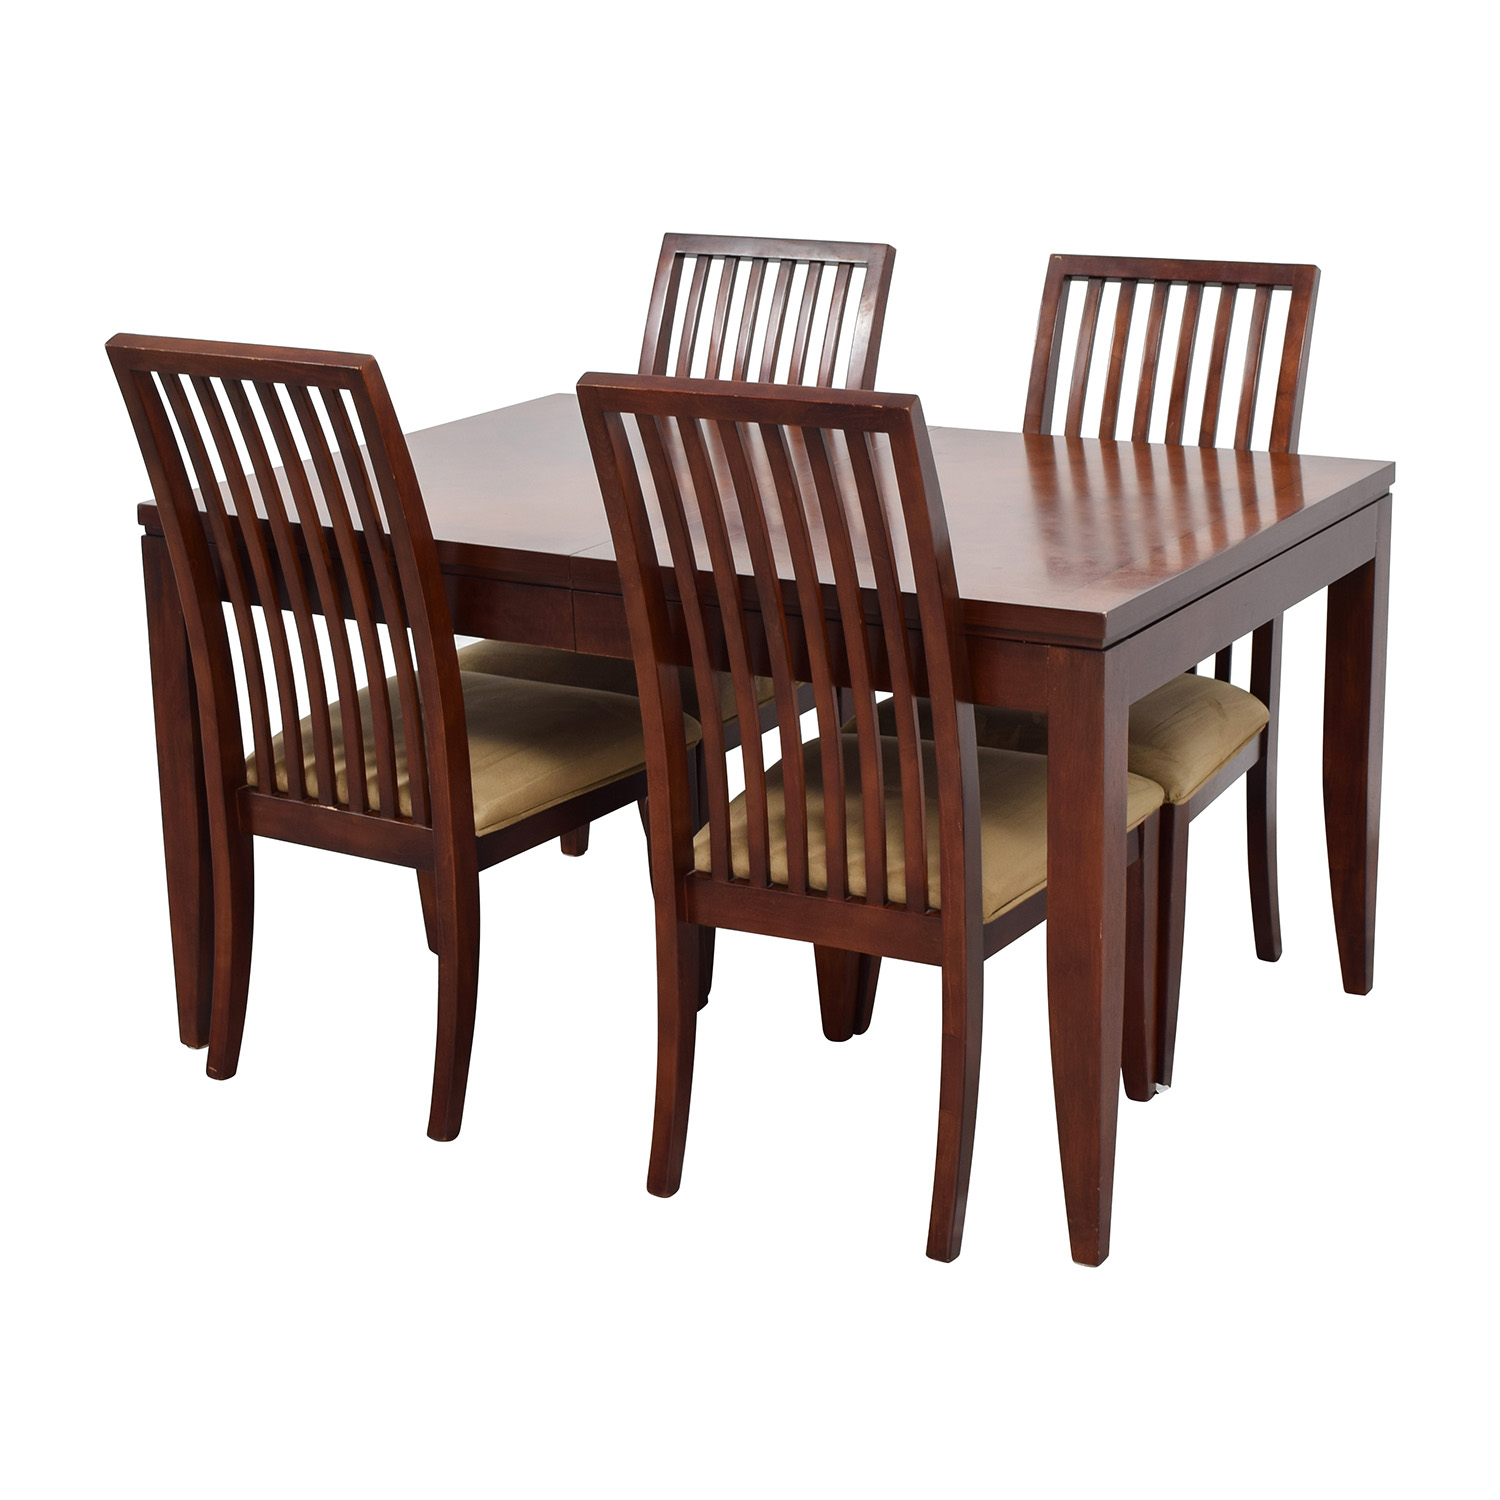 Macys Macys Metropolitan Dining Set with Four Chairs for sale